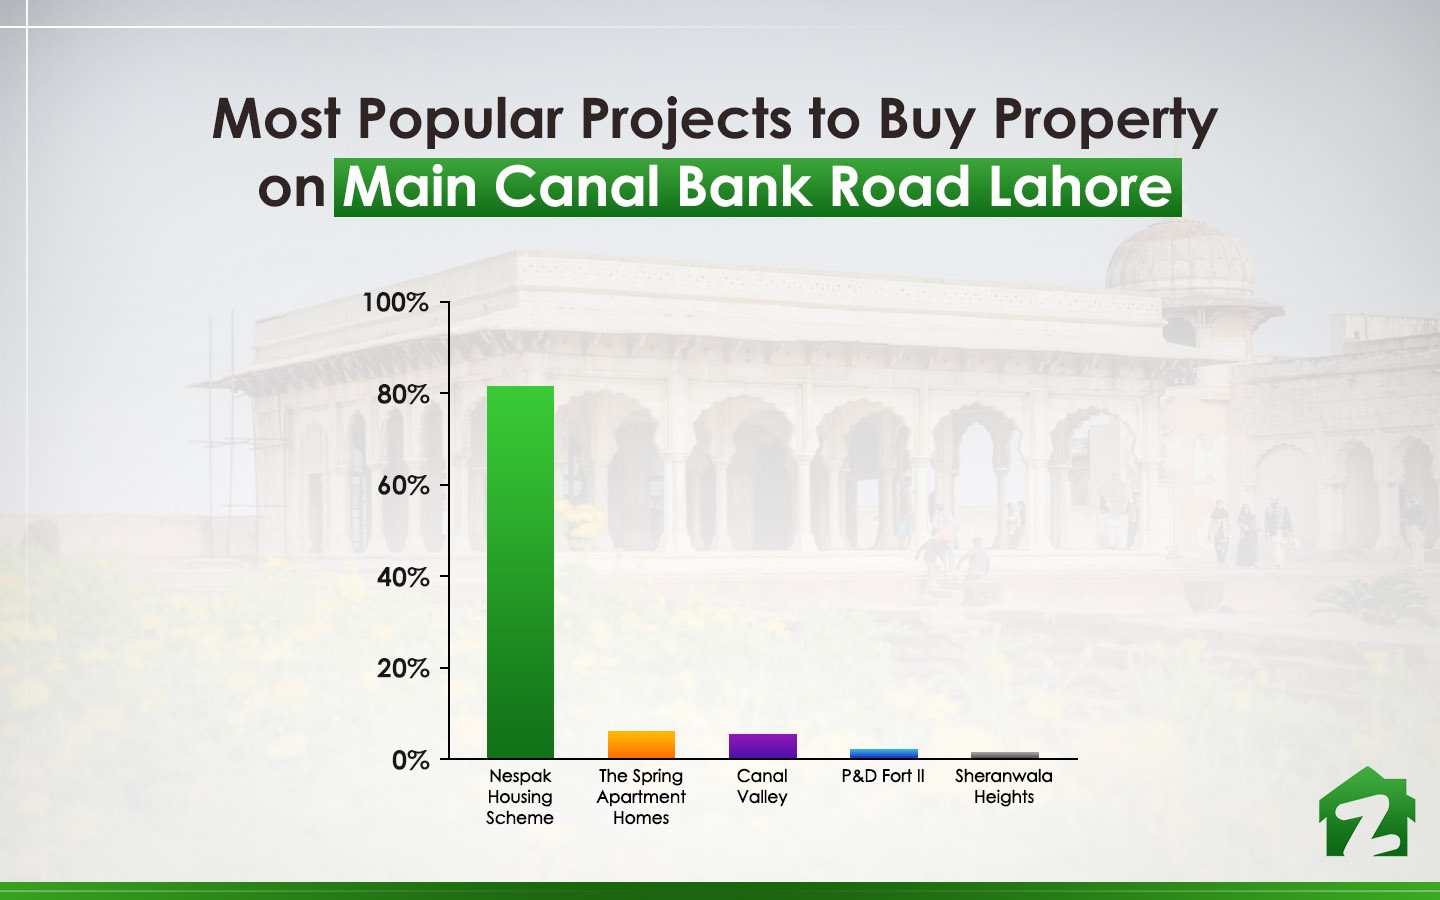 popular projects on Main Canal Bank Road